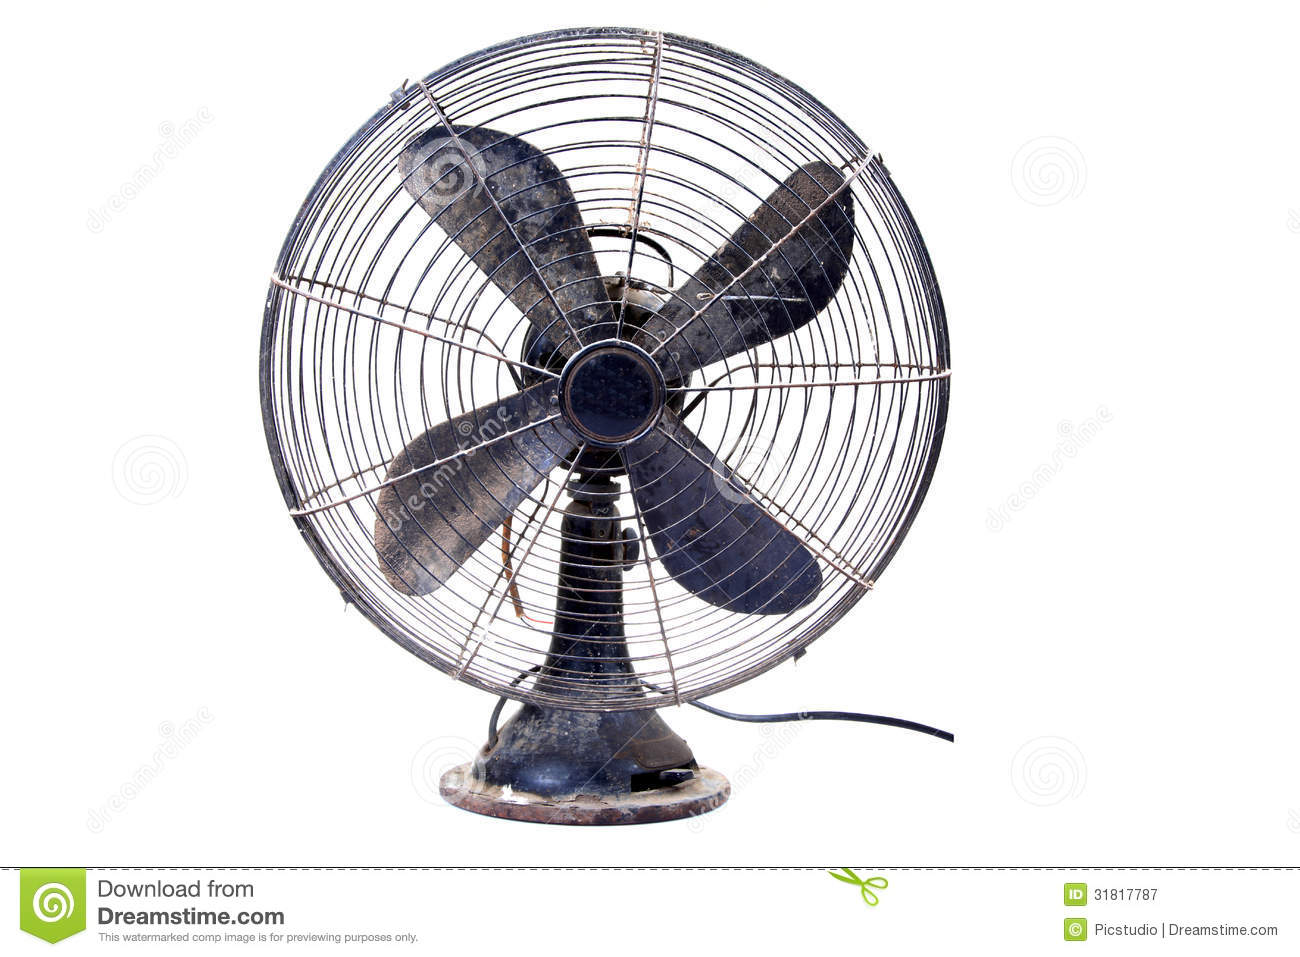 Table fan clipart.